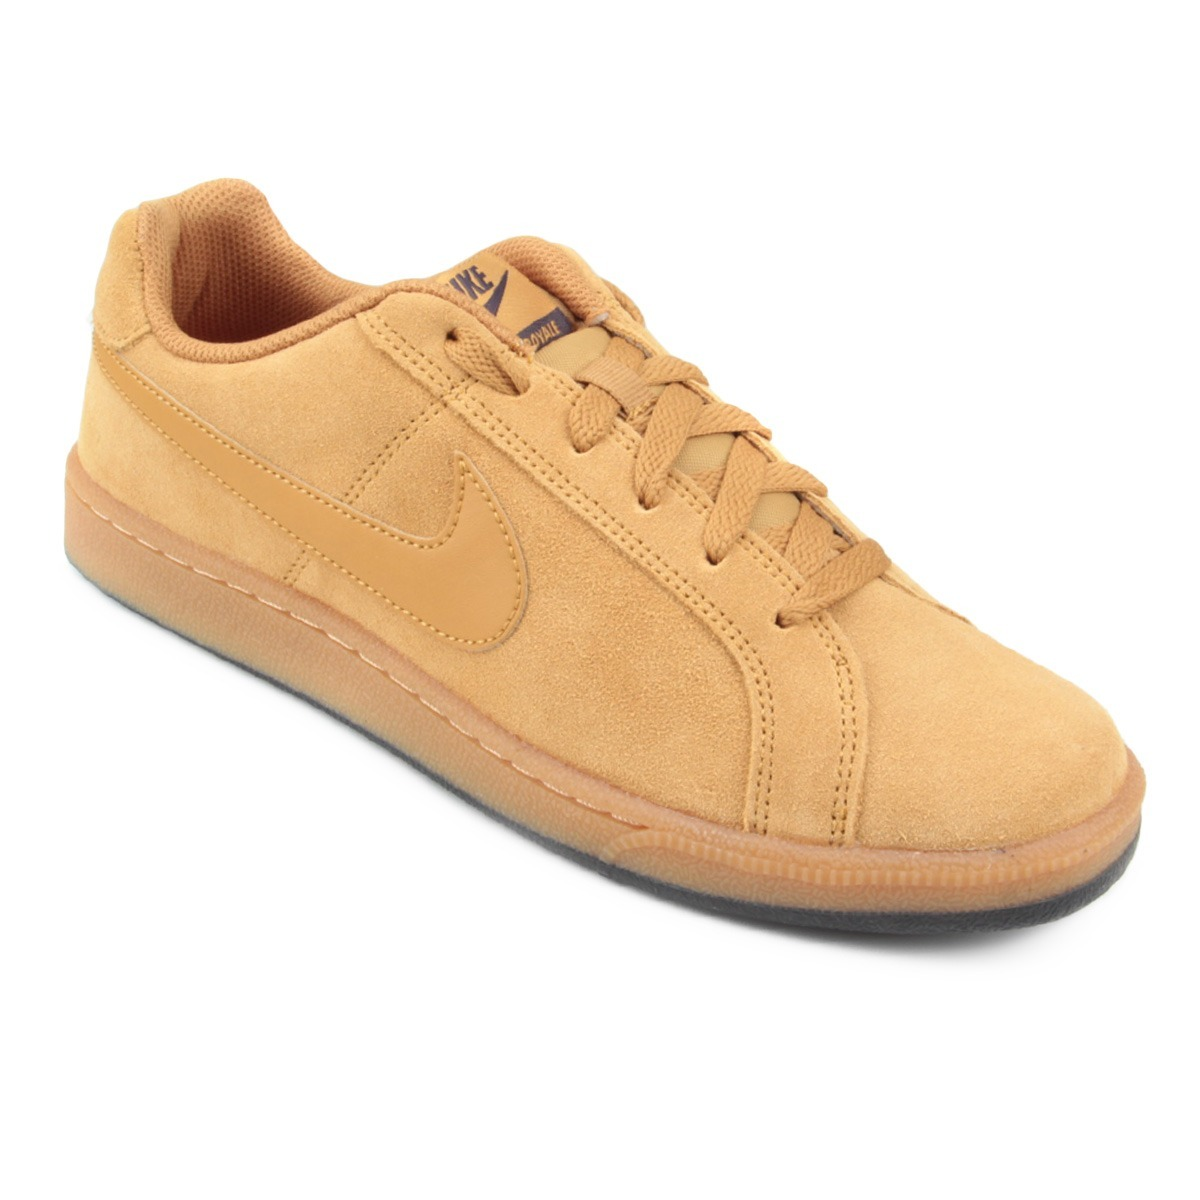 tênis nike court royale suede - masculino. Carregando zoom. 46781acf22ad1